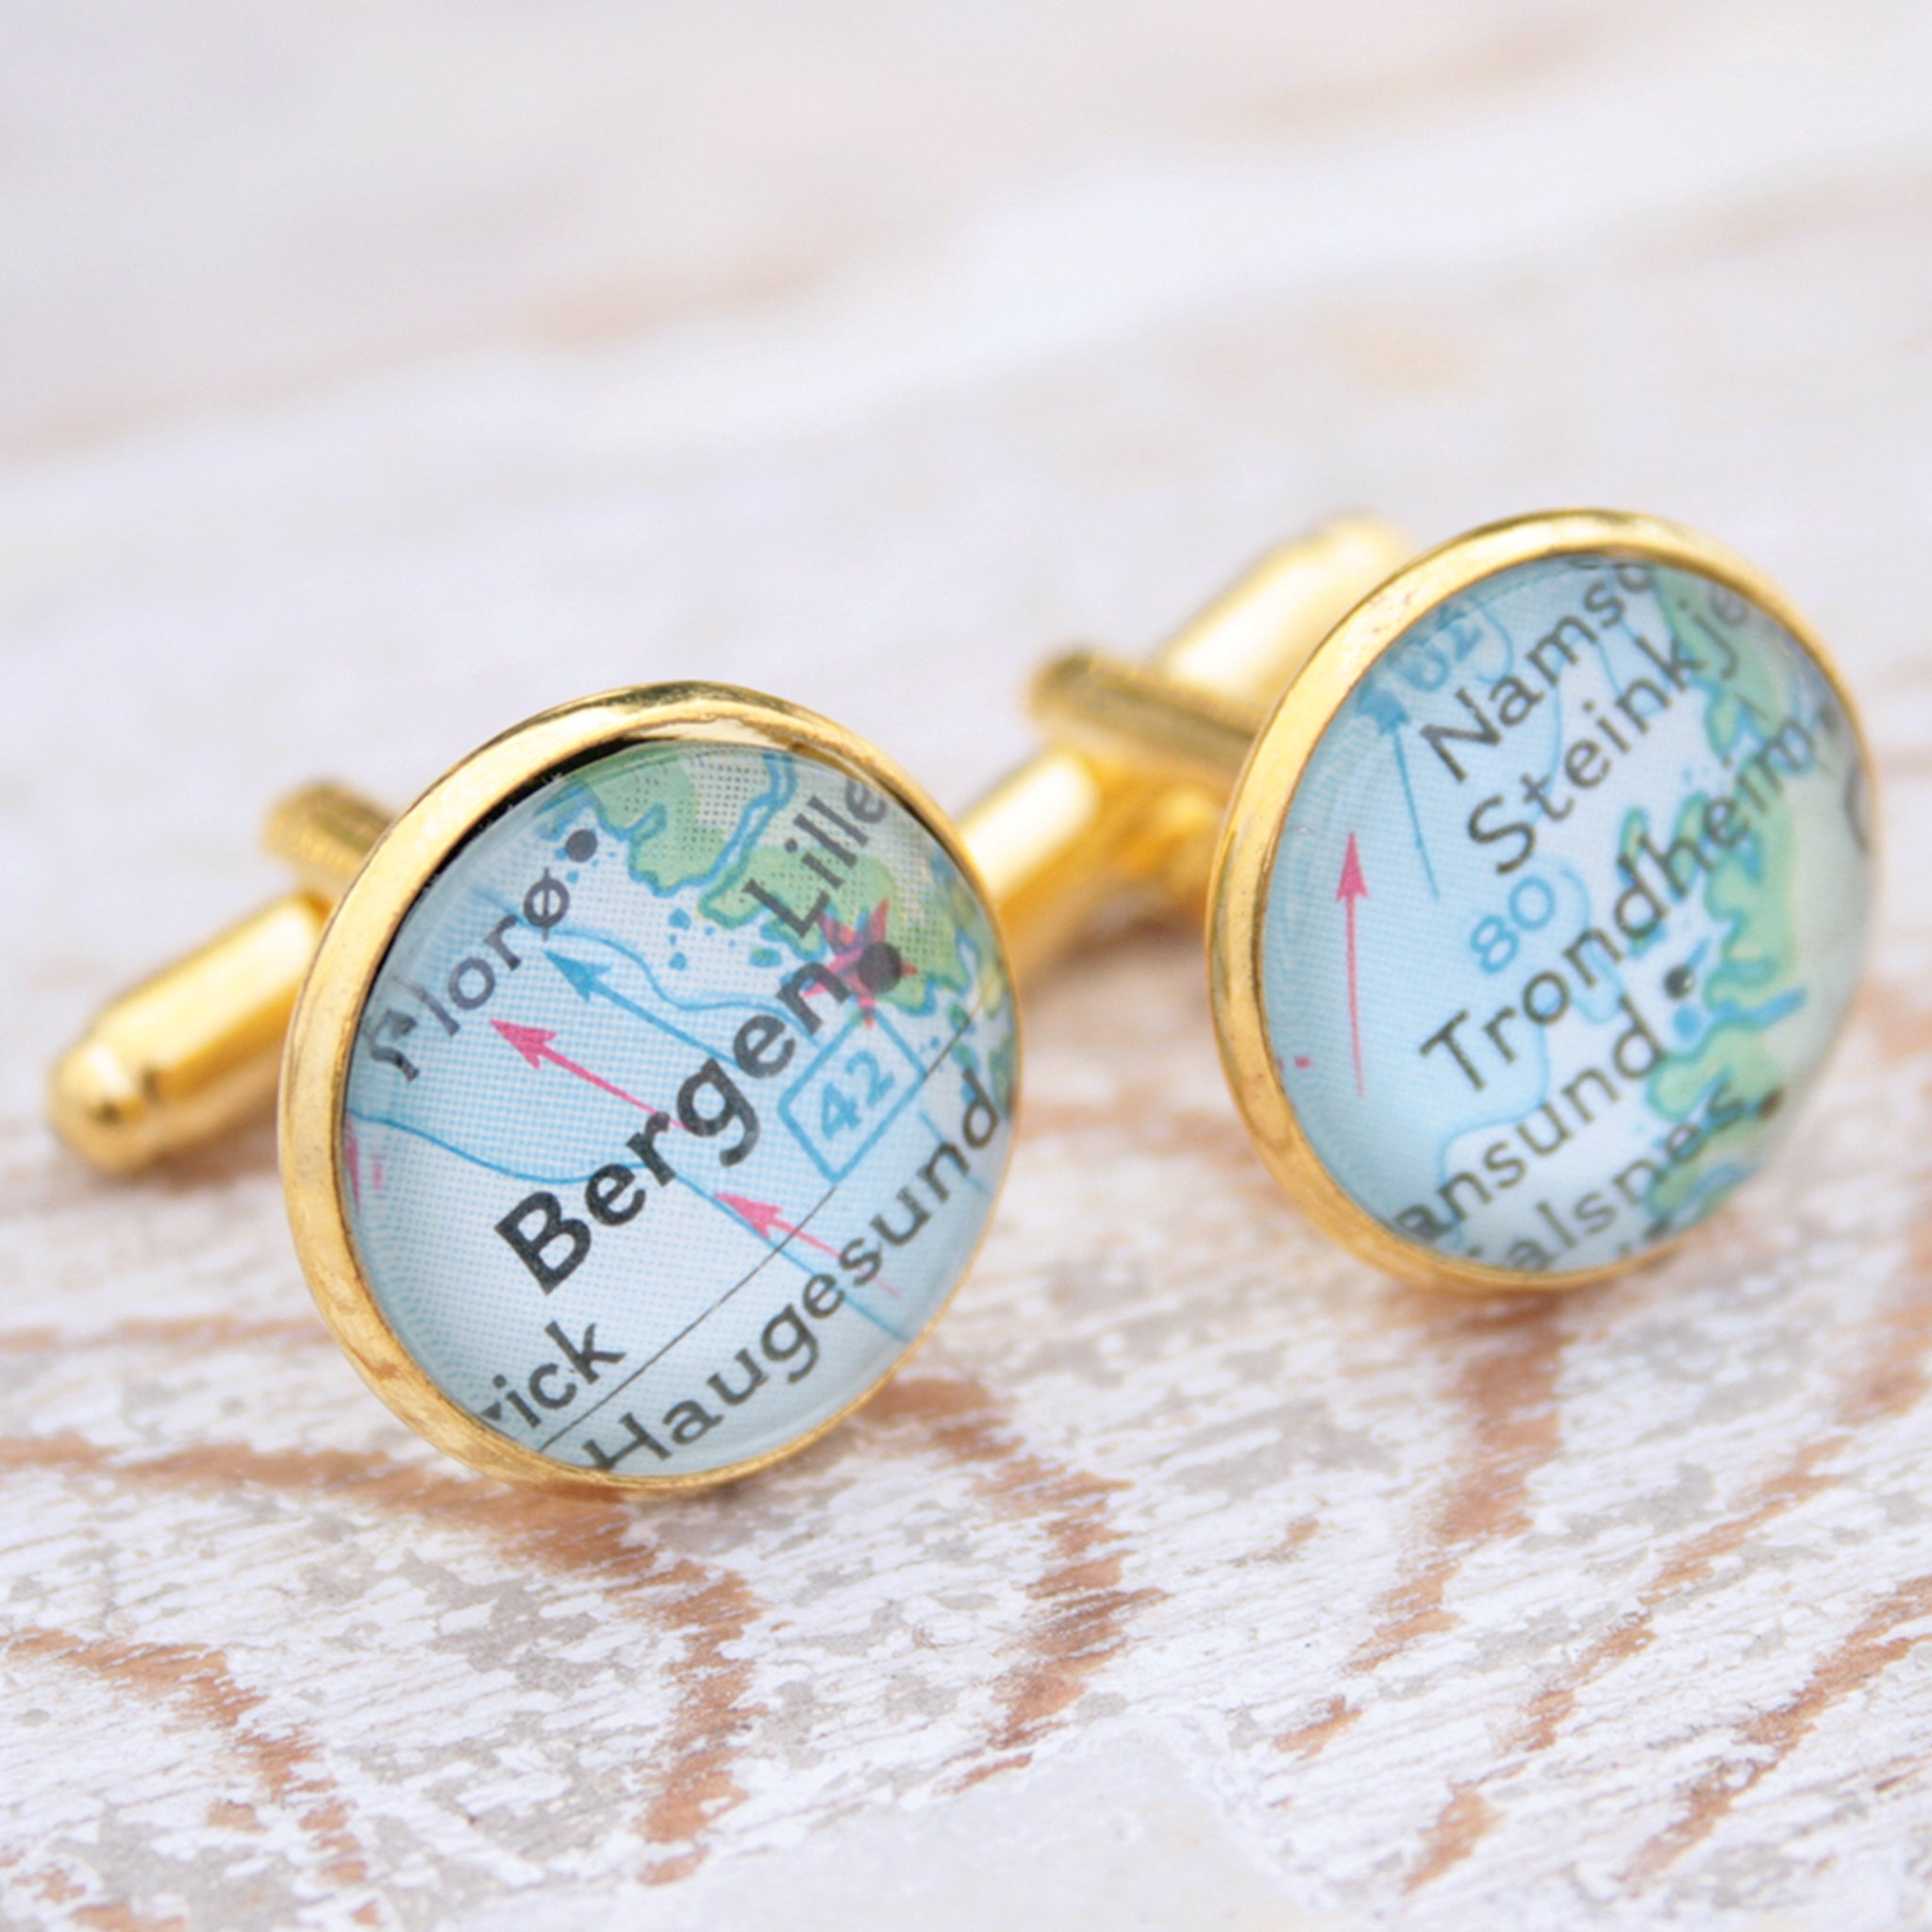 Personalised map cufflinks in gold color featuring maps of Bergen and Trondheim